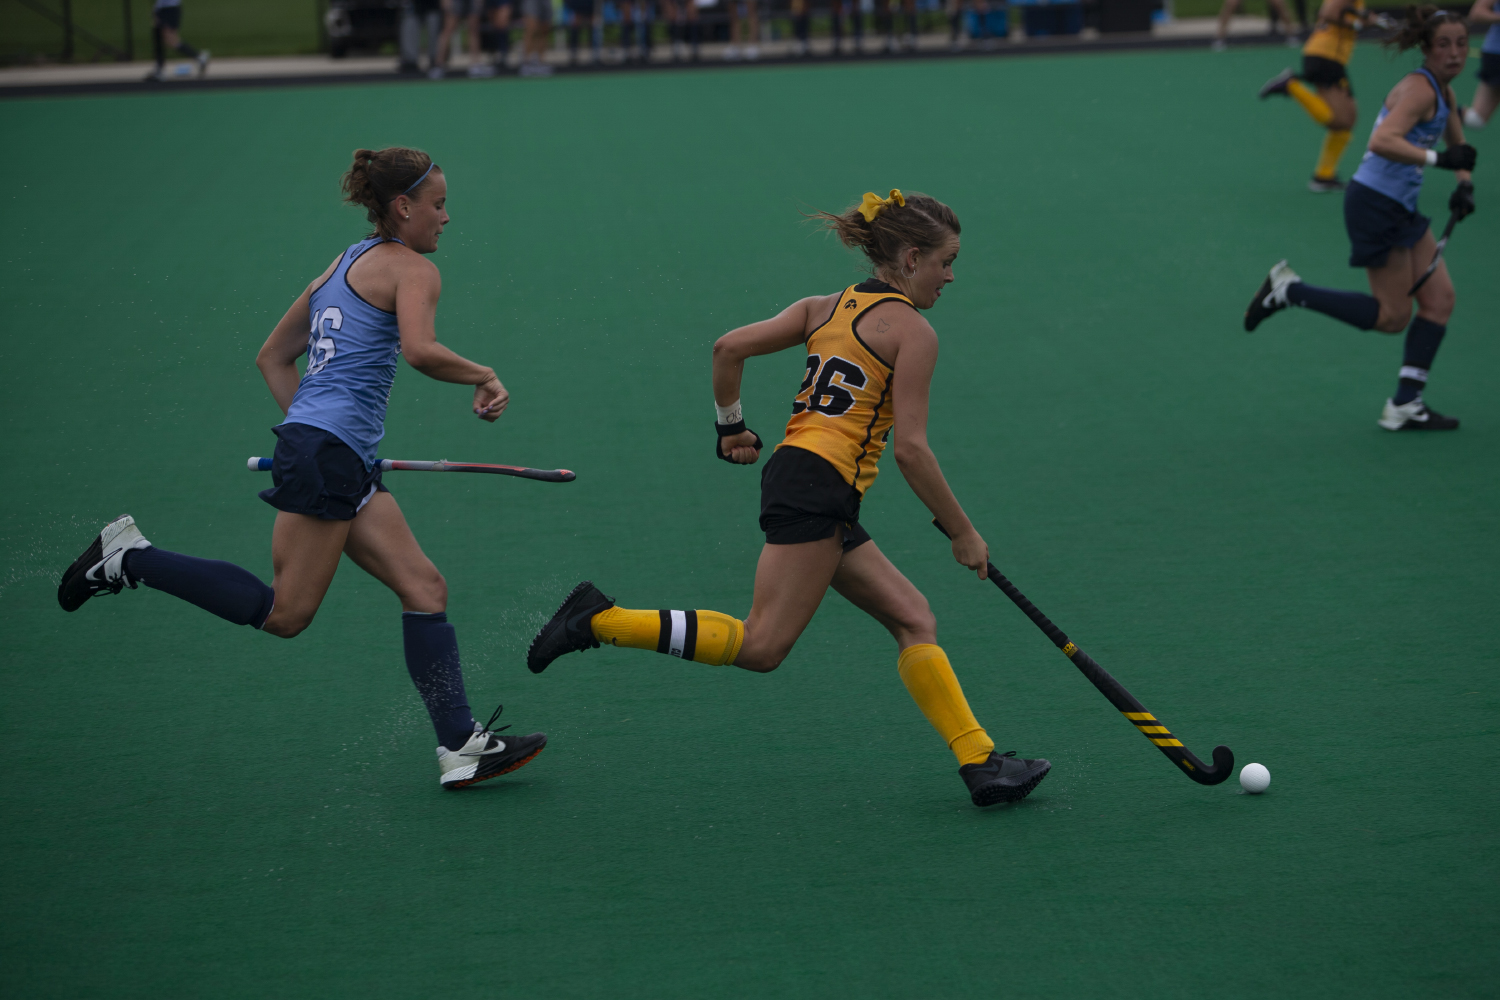 Iowa+forward+Maddy+Murphy+runs+the+ball+down+the+field+during+a+field+hockey+game+between+Iowa+and+Columbia+at+Grant+Field+on+Sunday%2C+September+8%2C+2019.+The+Hawkeyes+defeated+the+Lions%2C+3-1.